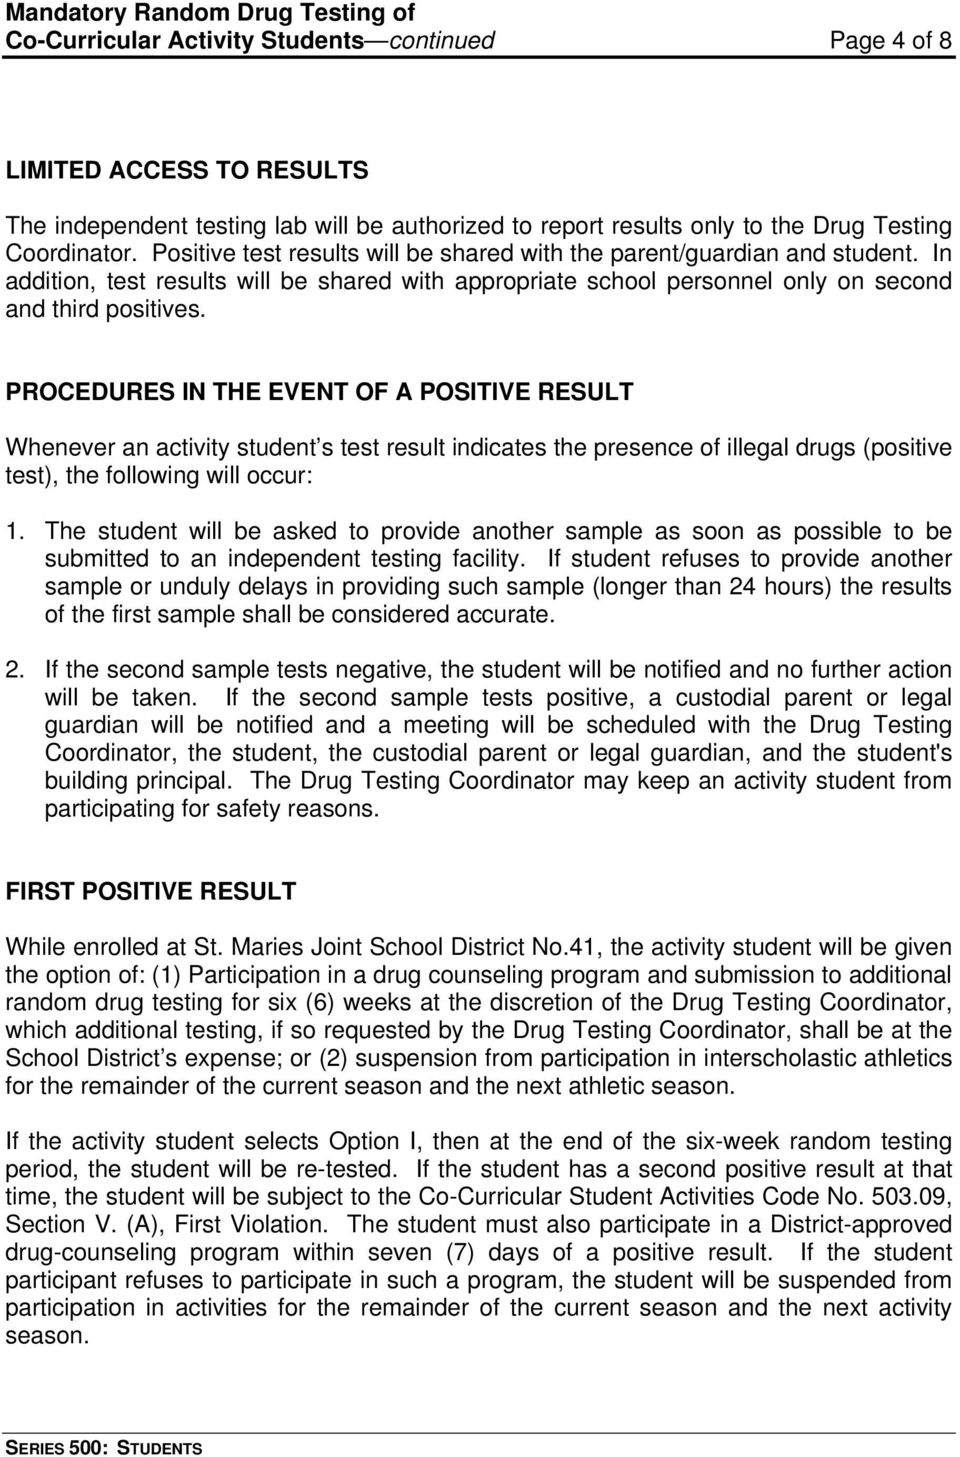 Frequently Asked Questions About Drug Testing in Schools